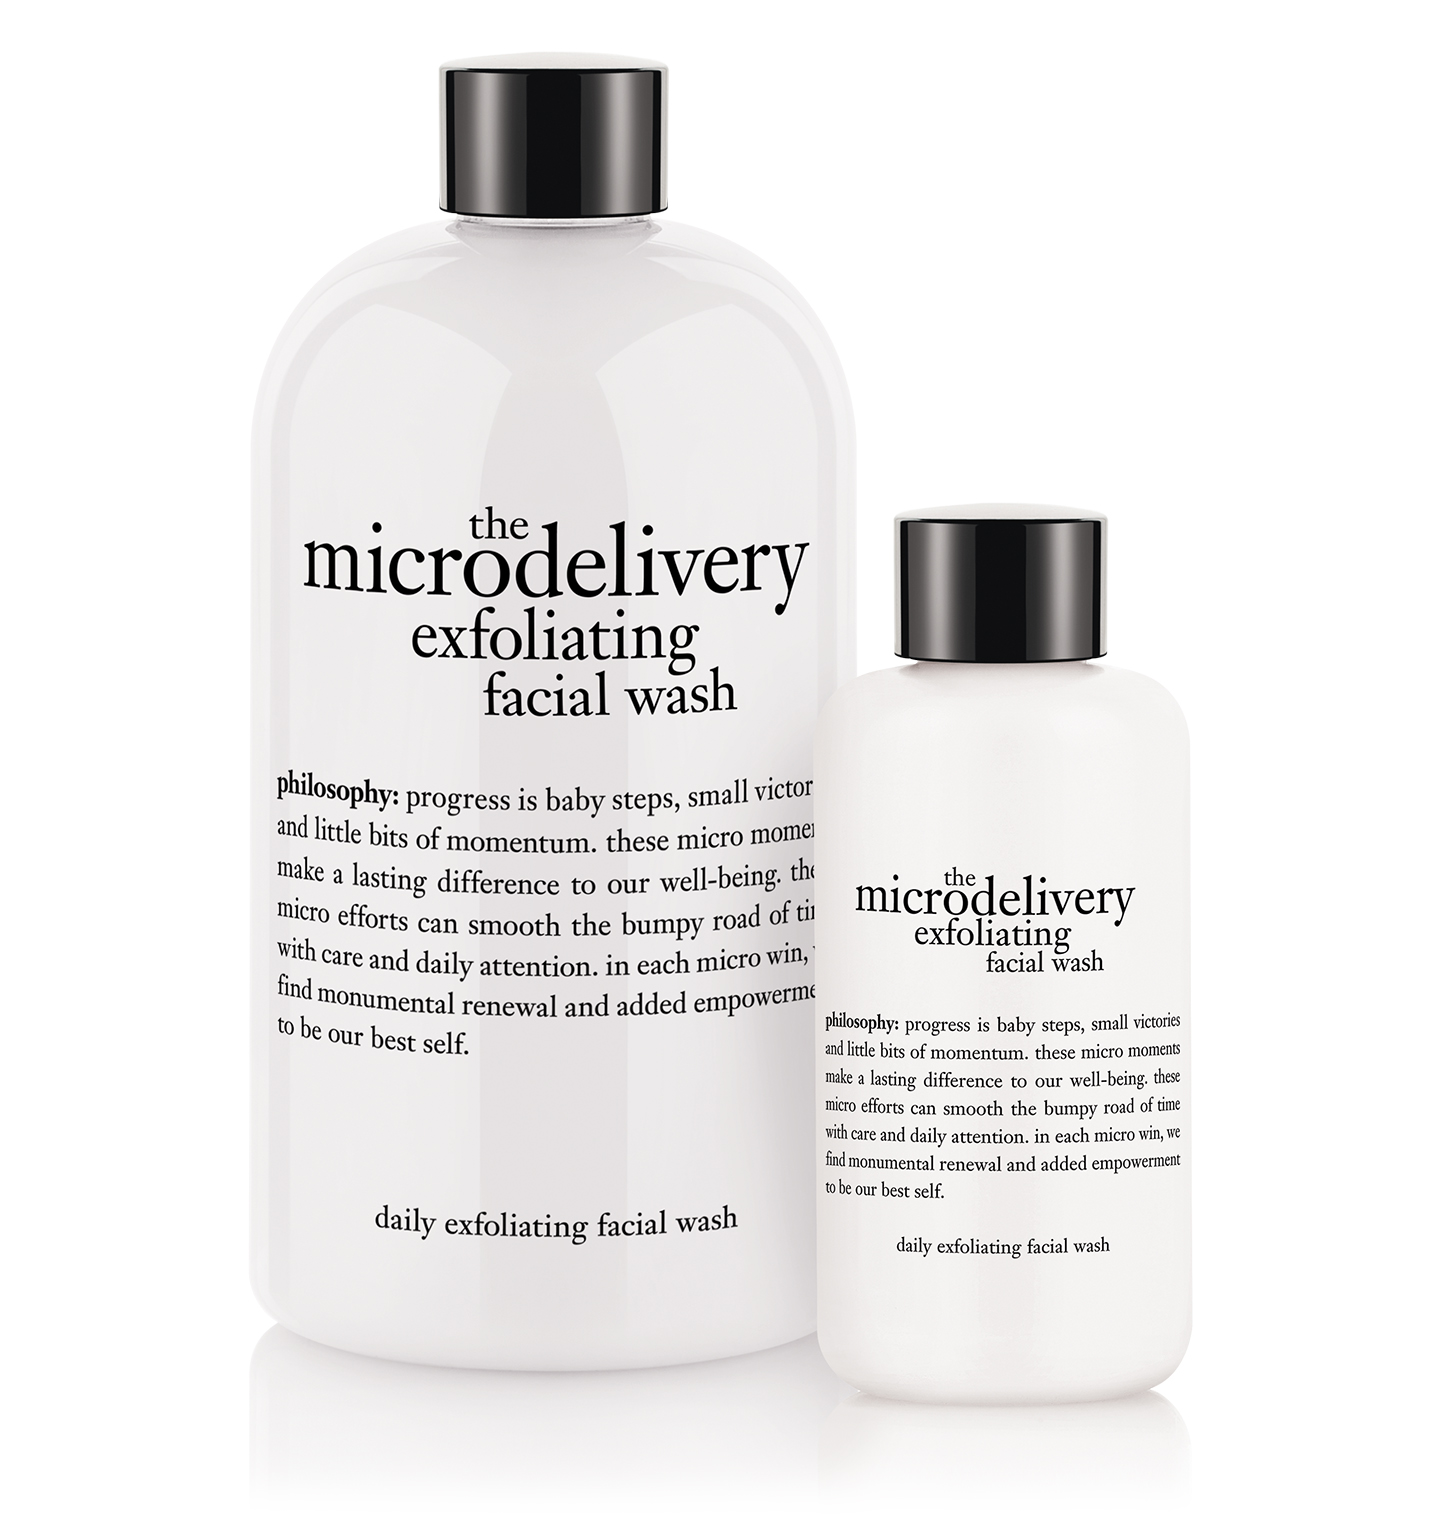 Microdelivery exfoliating facial wash